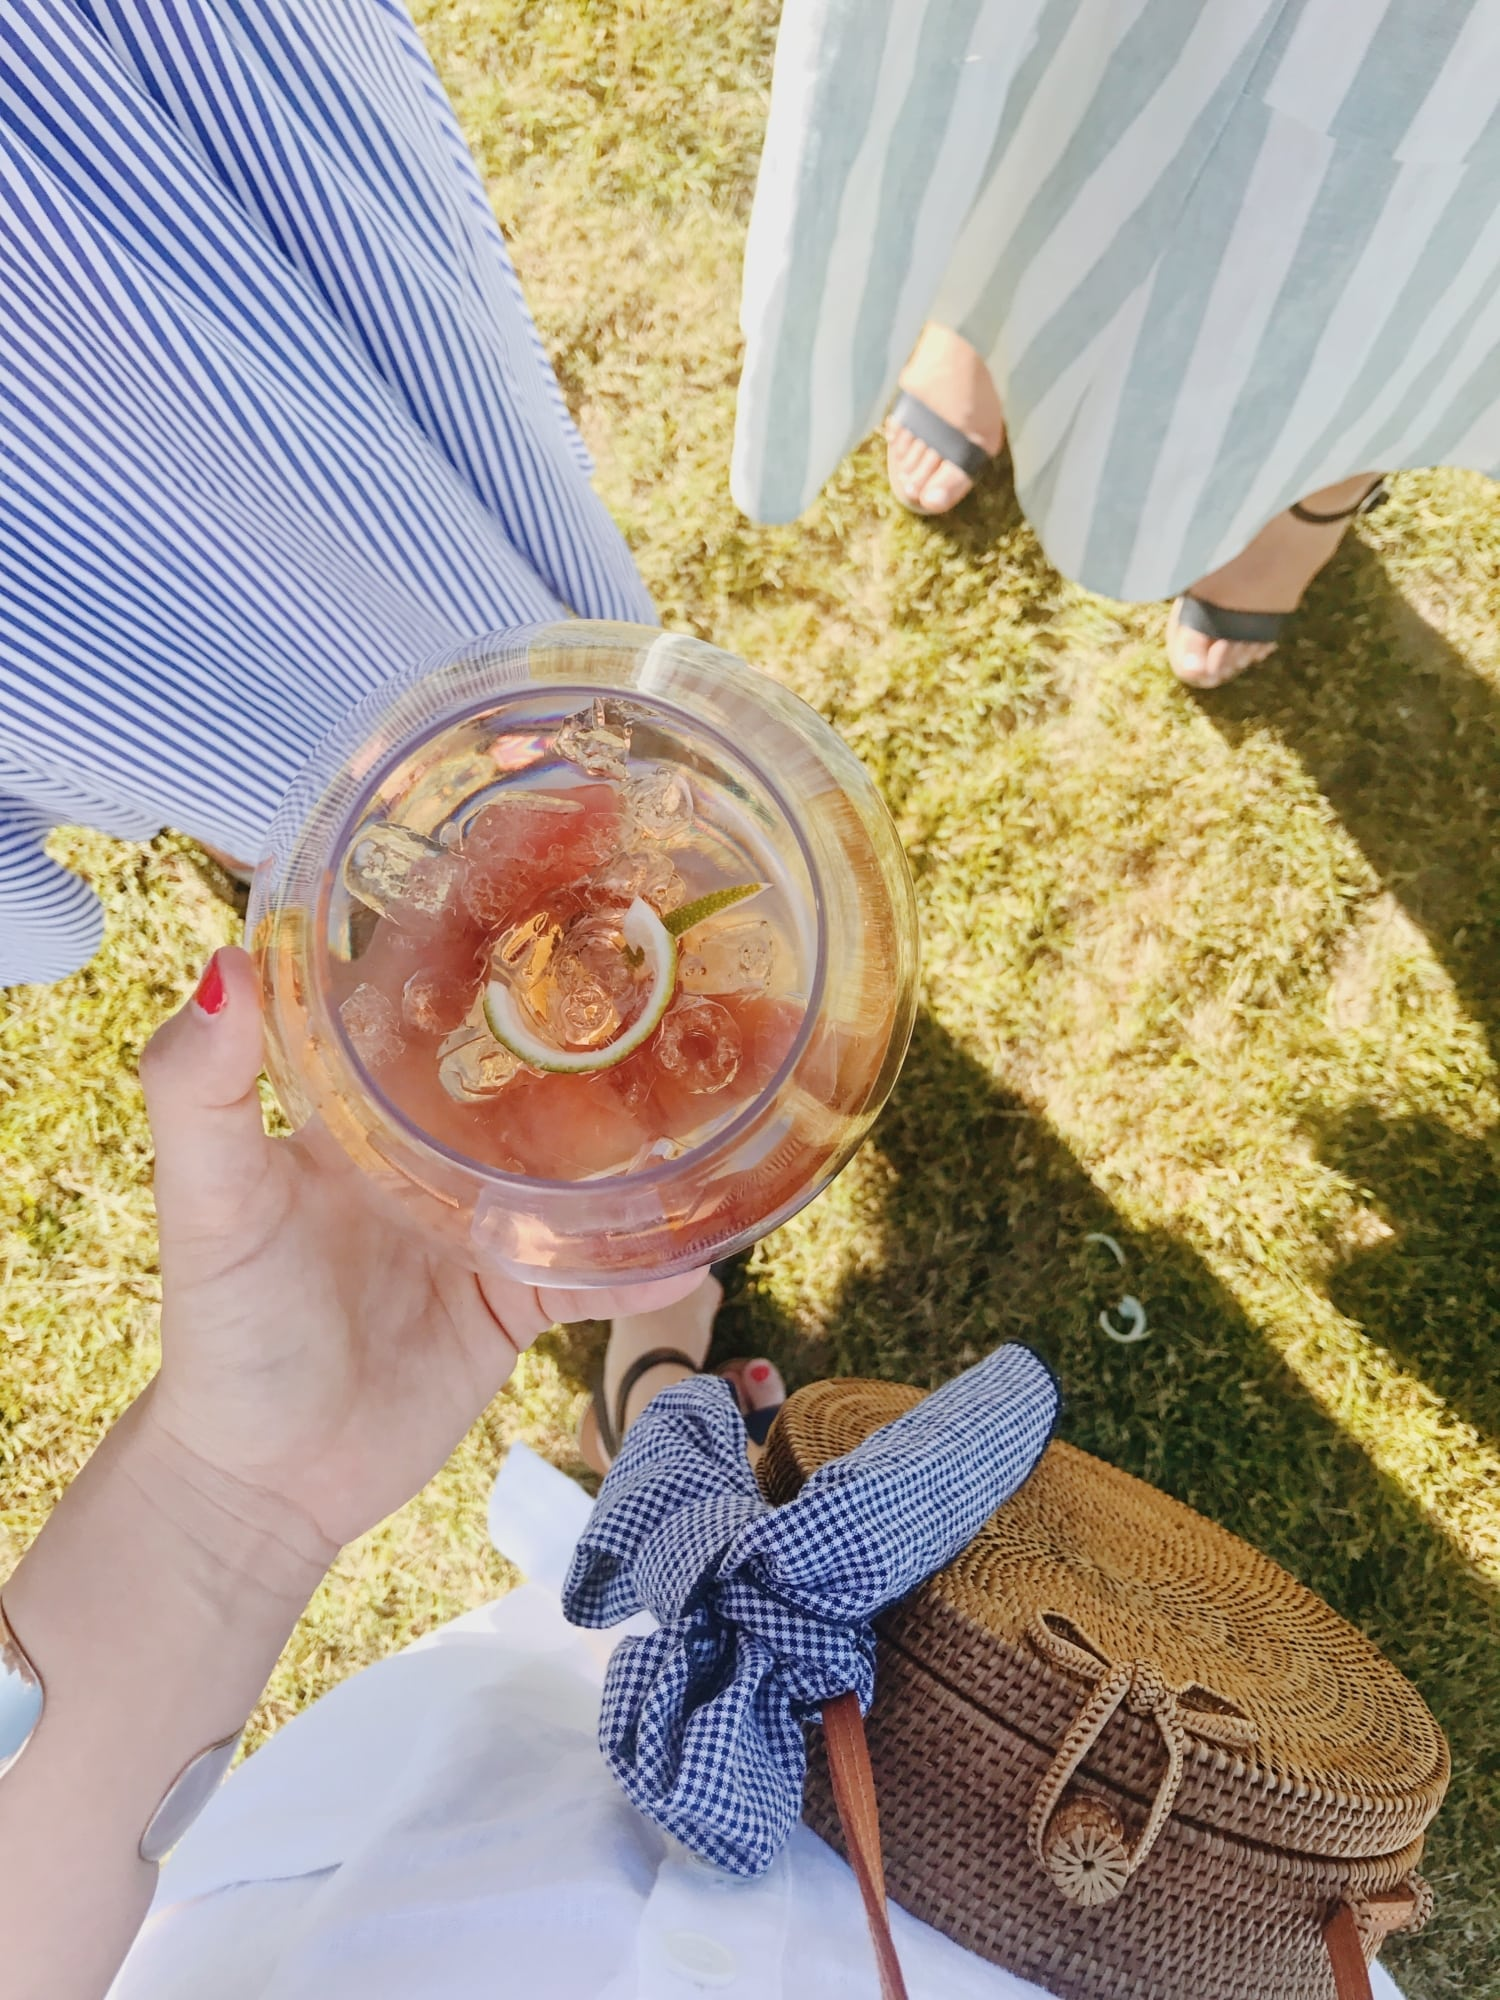 Stomping Divots at the Veuve Clicquot Polo Classic